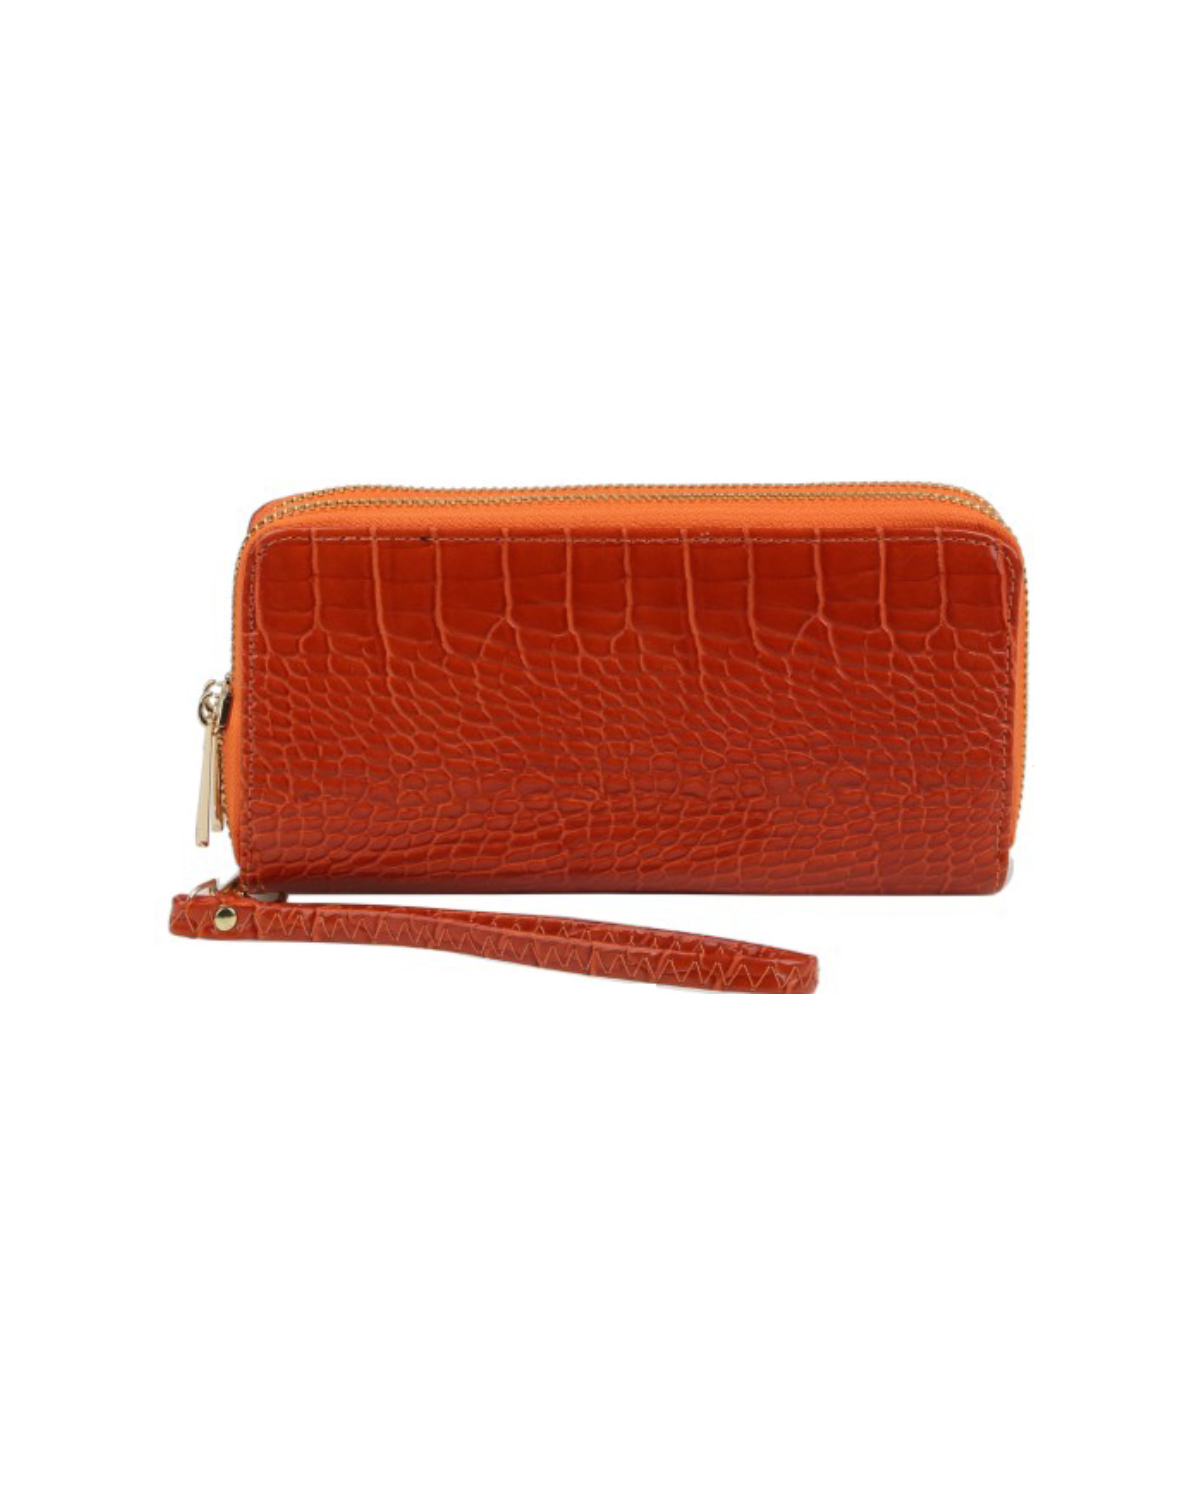 W02CD(OR)-wholesale-wallet-alligator-ostrich-leatherette-flap-tri-fold-vegan-leather-twist-lock-gold-frame(0).jpg